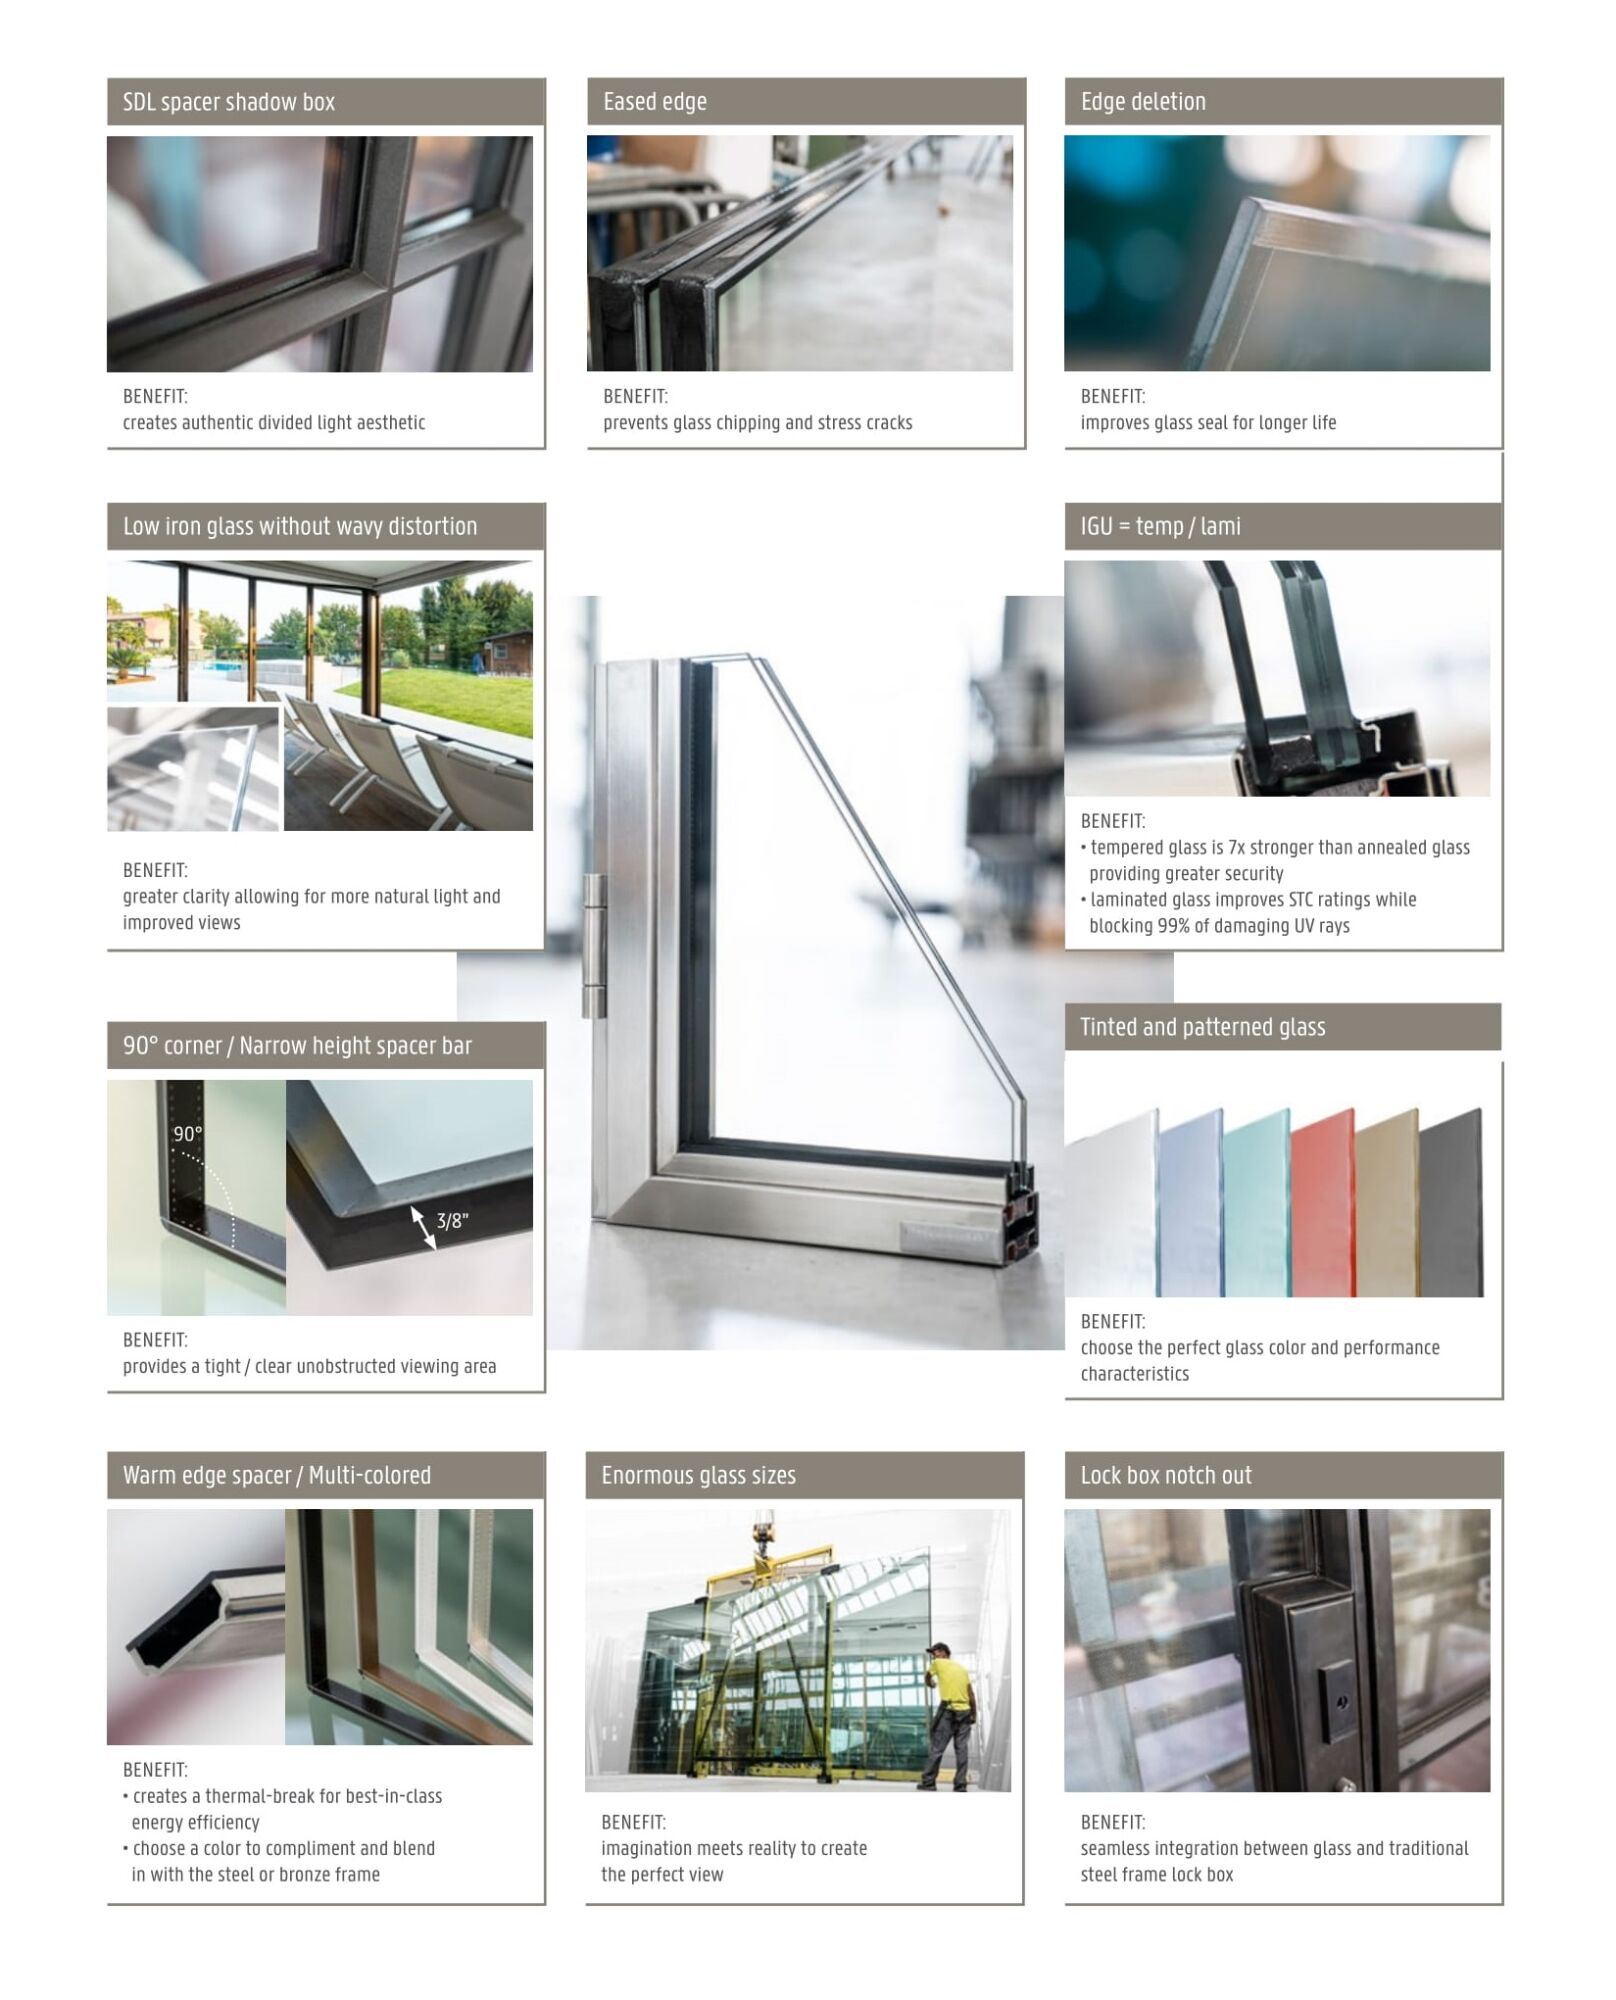 Brombal's glass product sheet